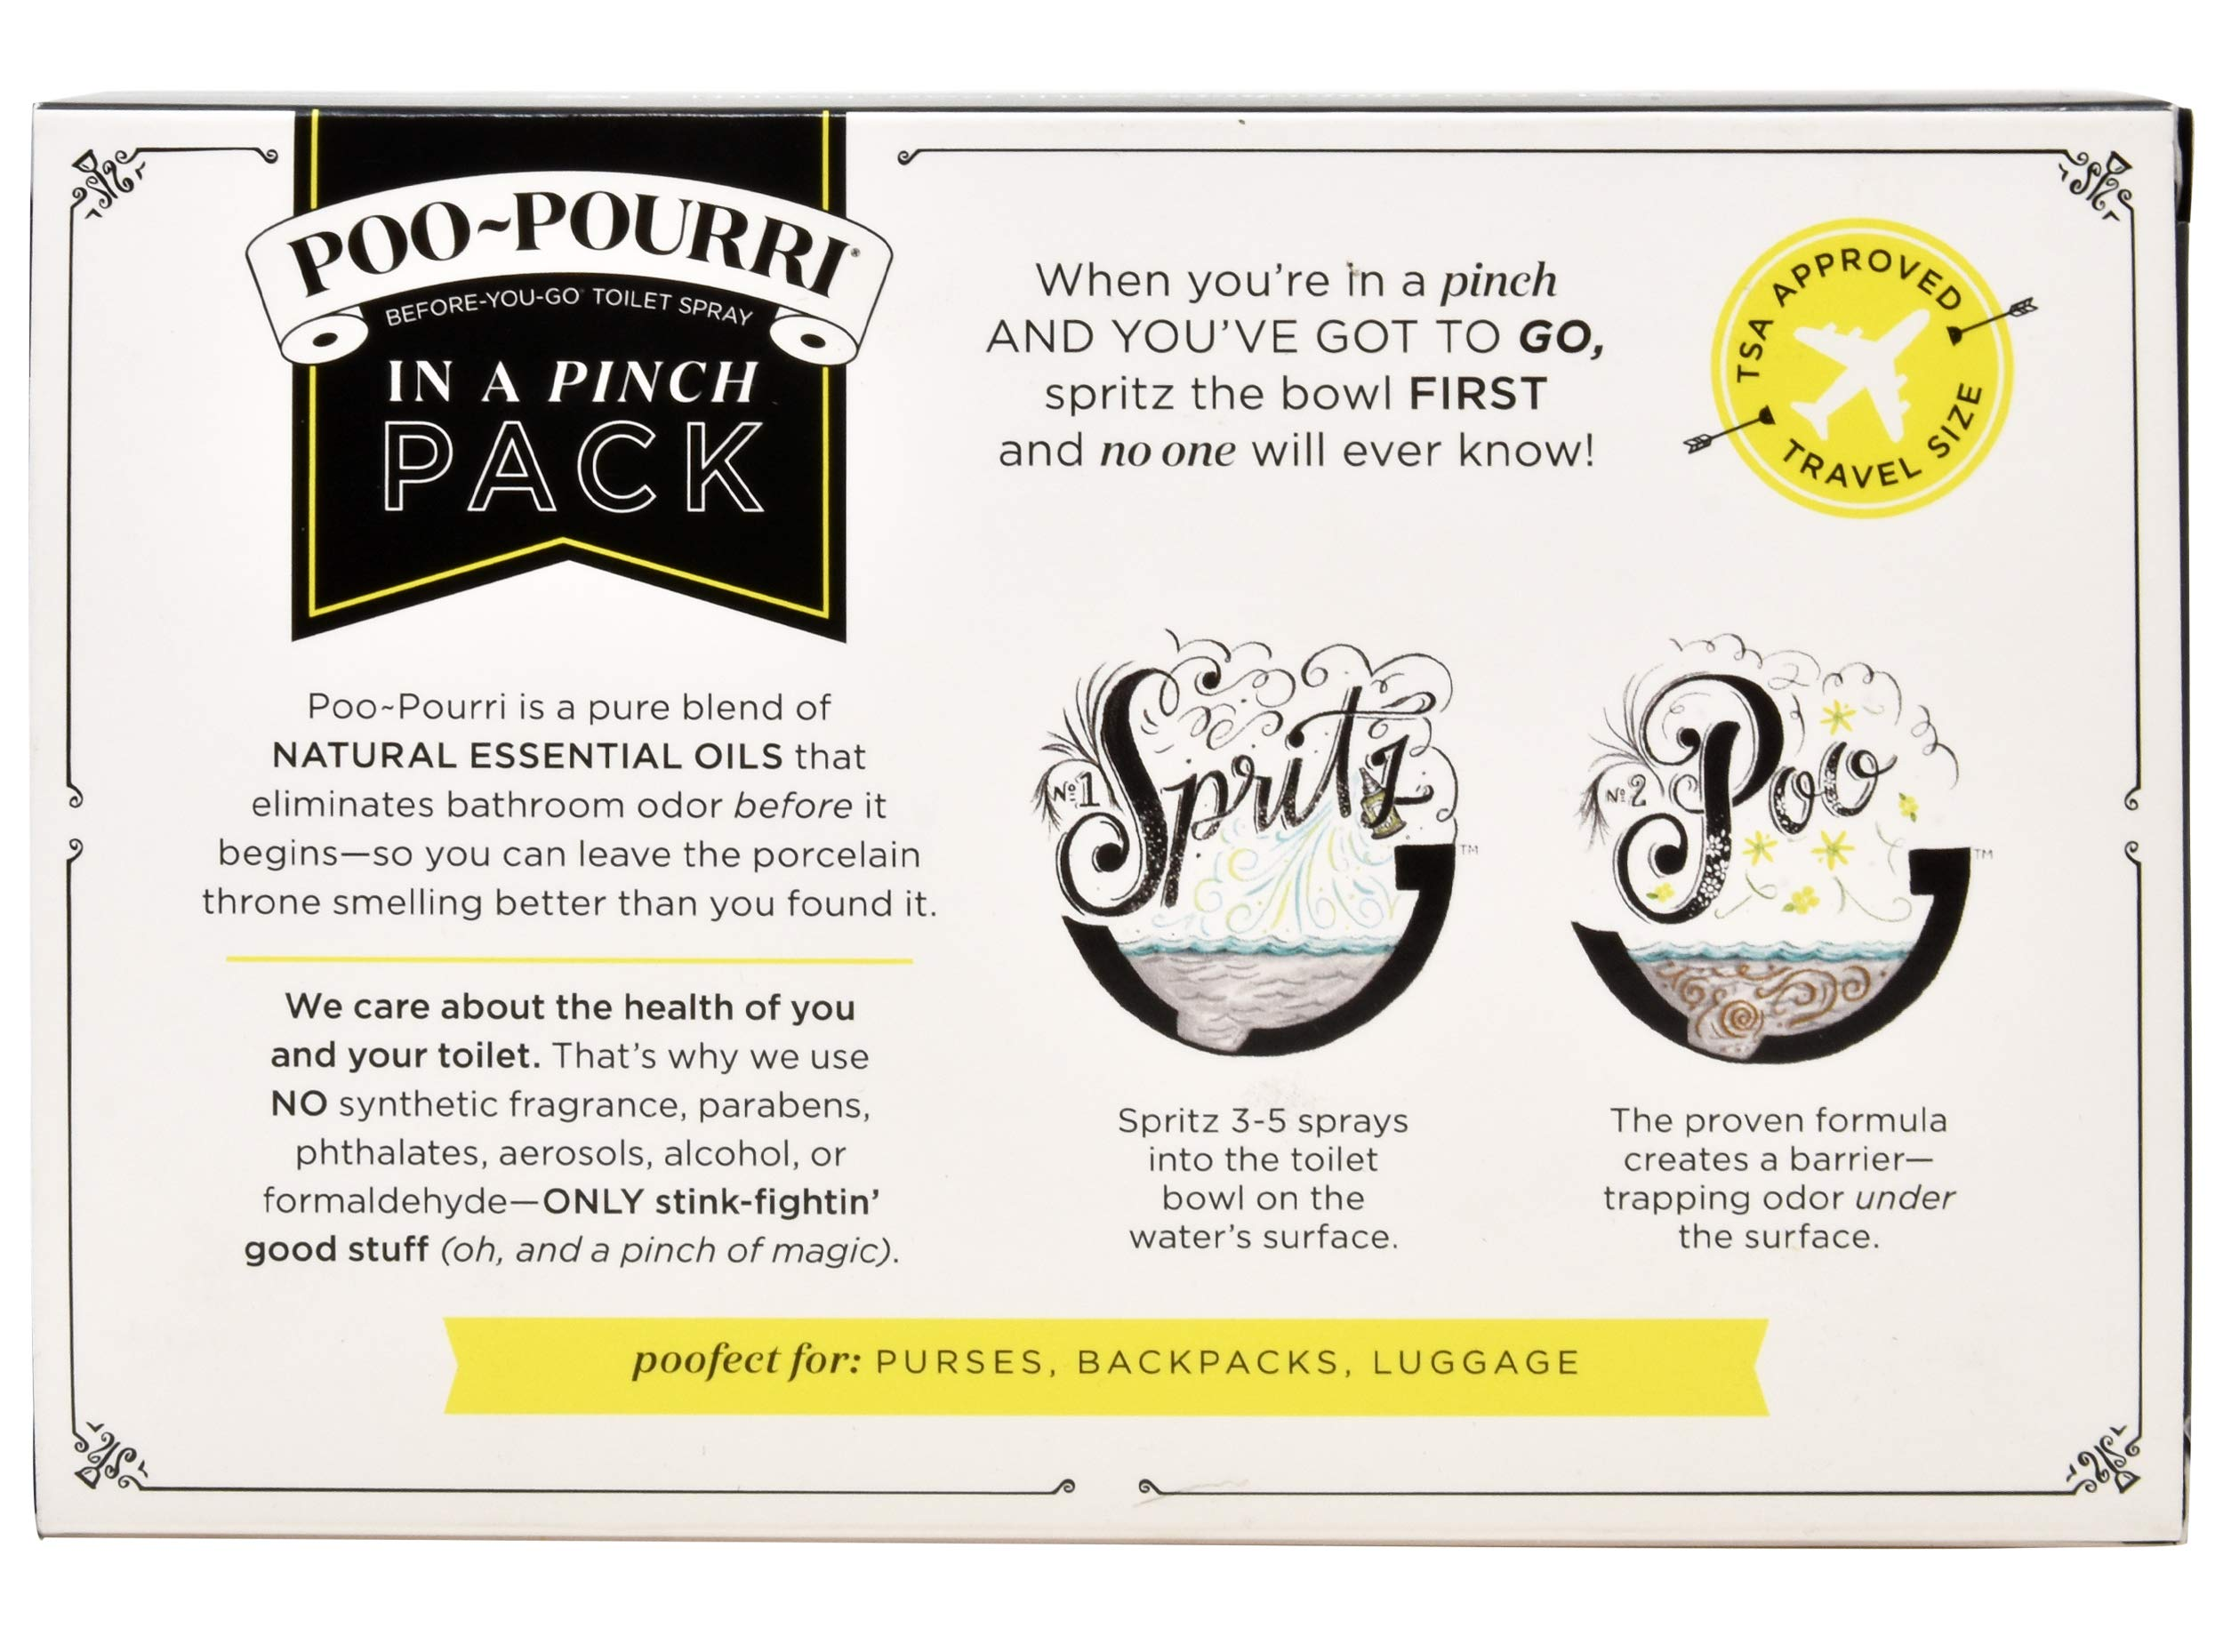 Poo-Pourri in A Pinch Pack Toilet Spray Gift Set, 5 Pack 10 mL, 1.4 Ounce Original Bottle and Bottle Tag Included by Poo-Pourri (Image #5)